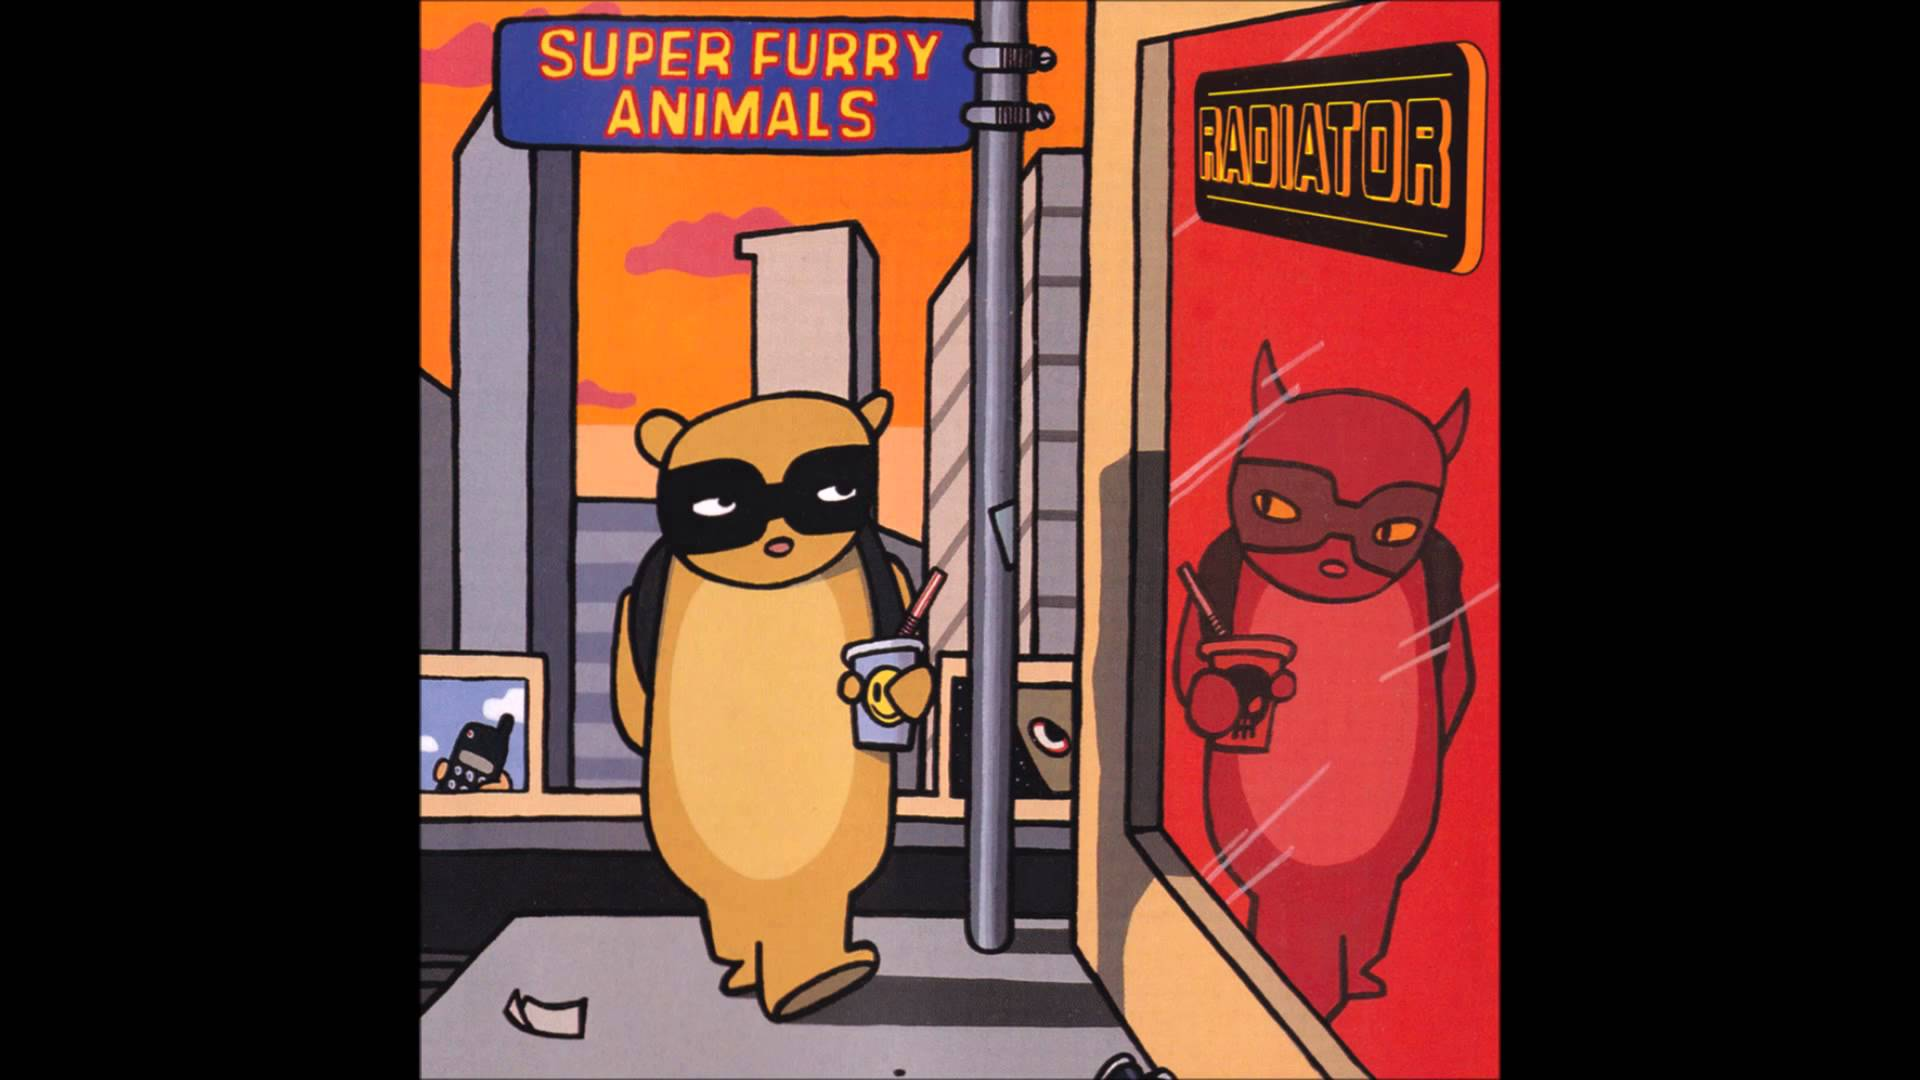 adiator Super Furry Animals album review